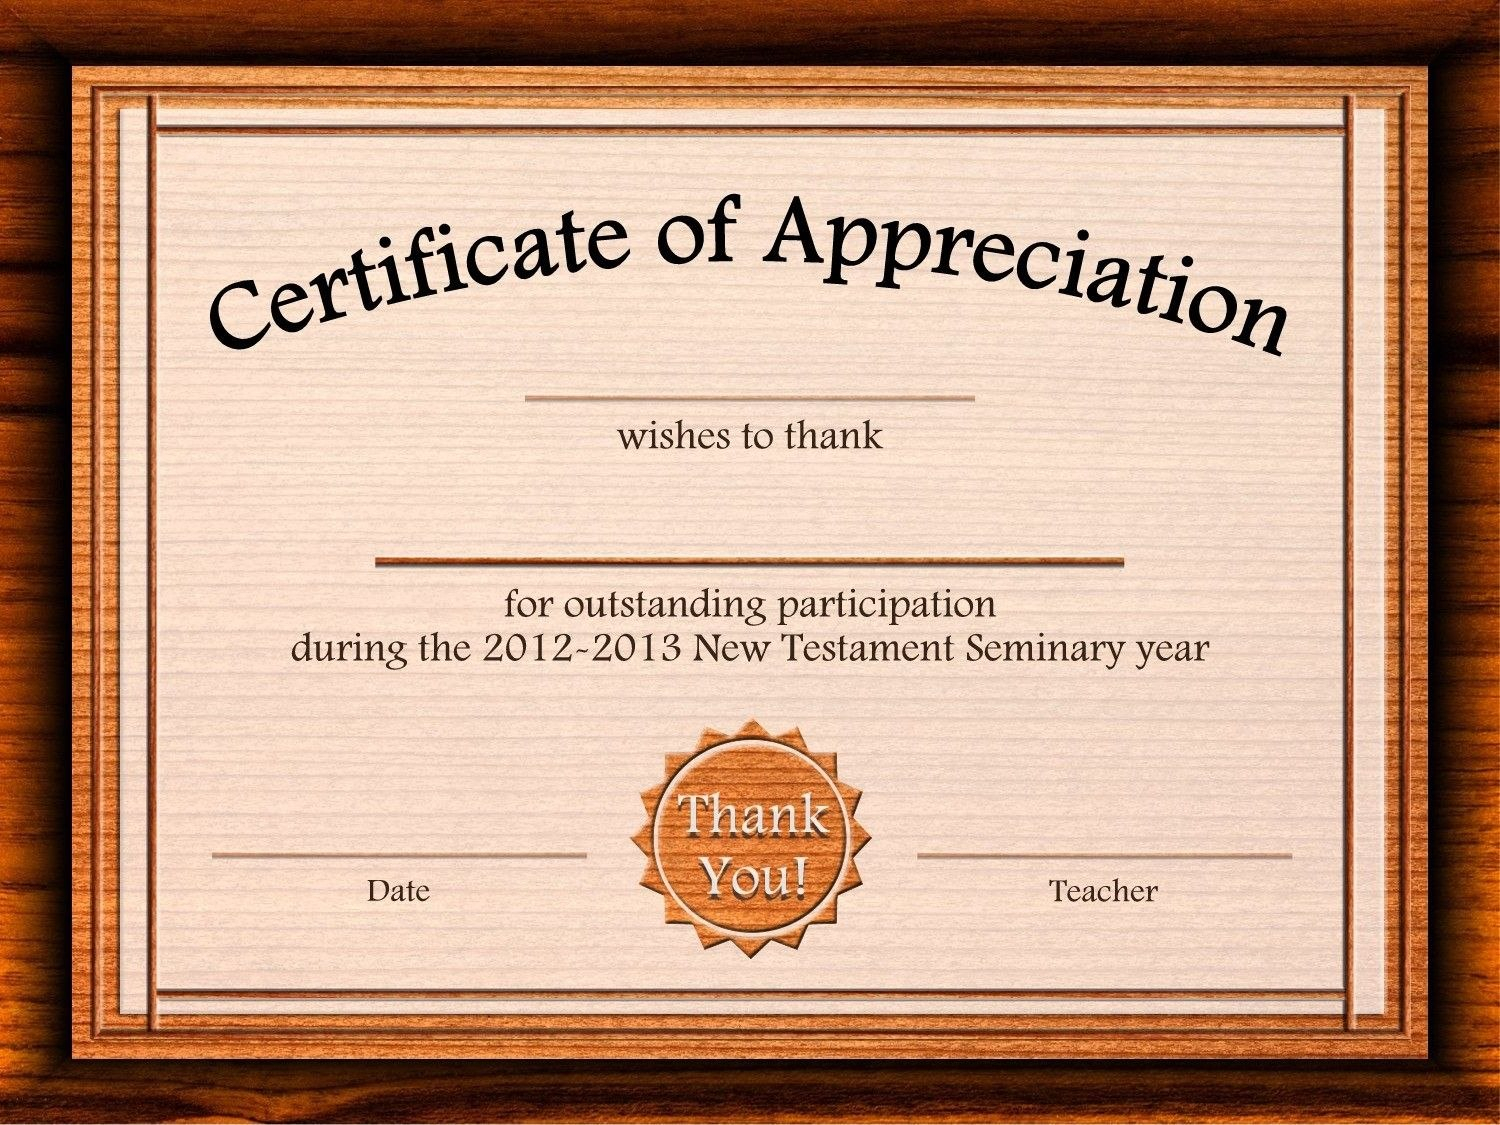 Free Certificate Of Appreciation Templates For Word Intended For Certificate Templates For Word Free Downloads